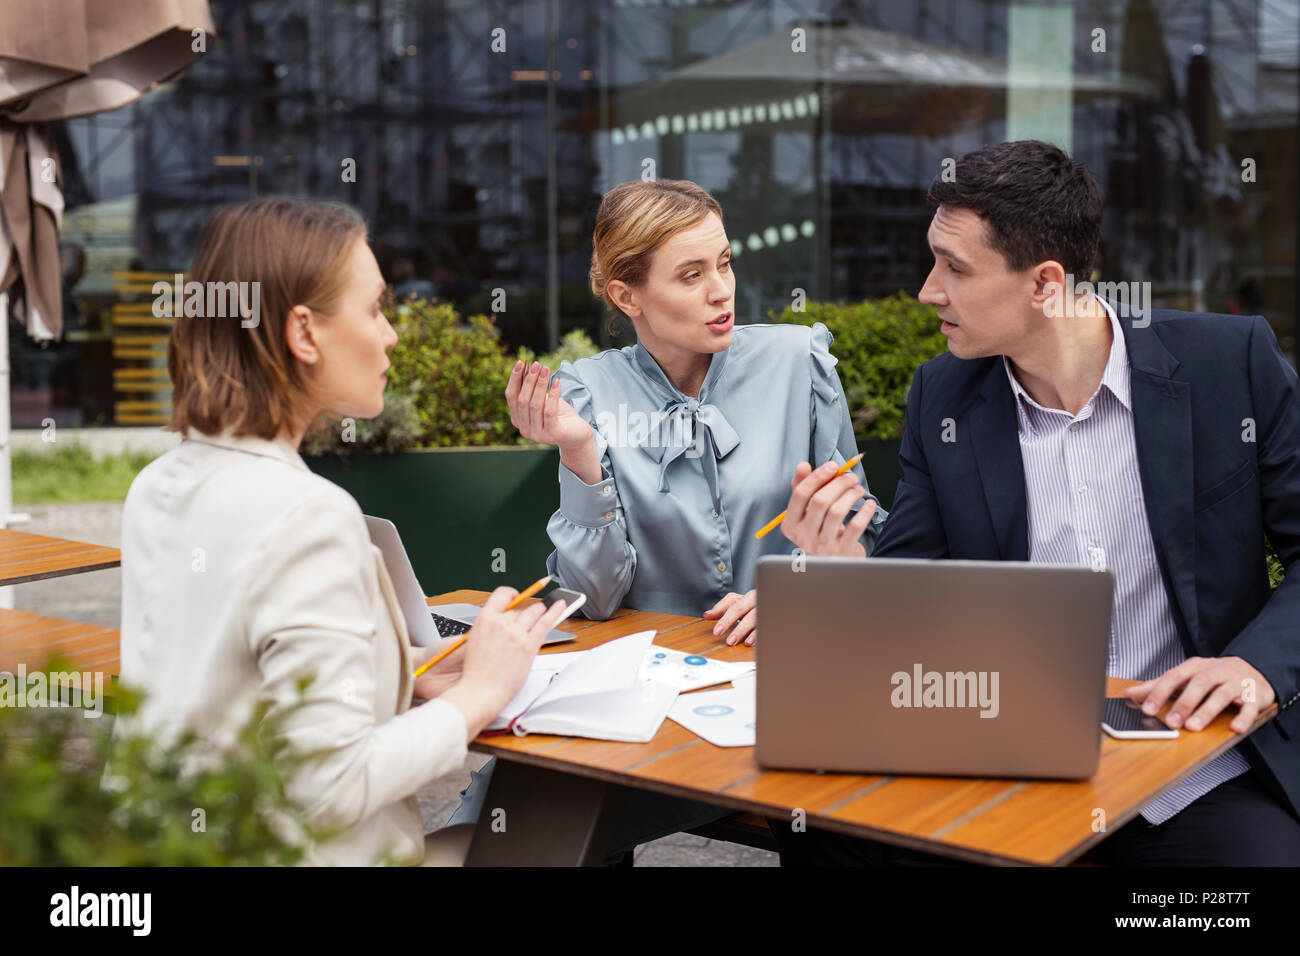 Three managers having dispute about business proposal - Stock Image